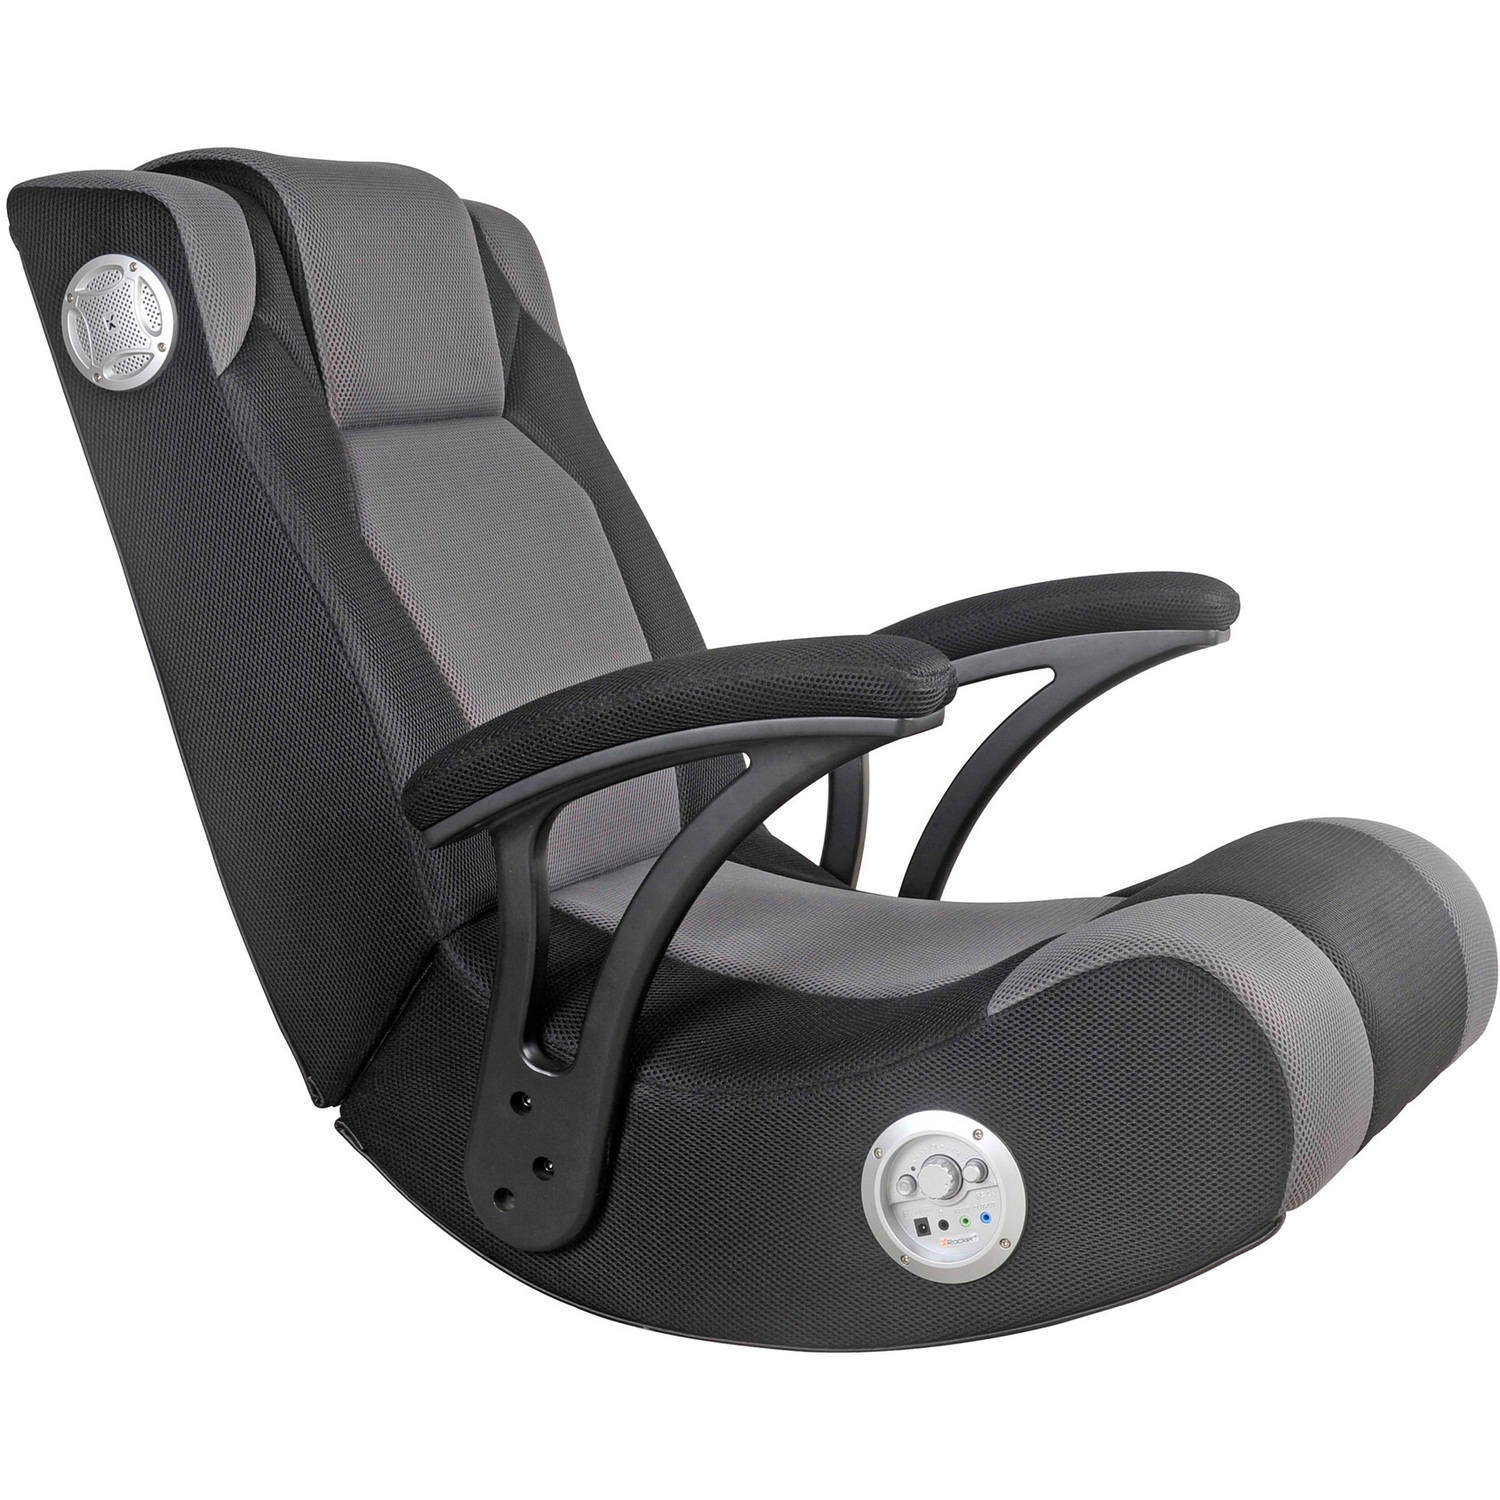 Great X Video Rocker Impact Mesh Sound Gaming Chair, Black, 51056   Walmart.com